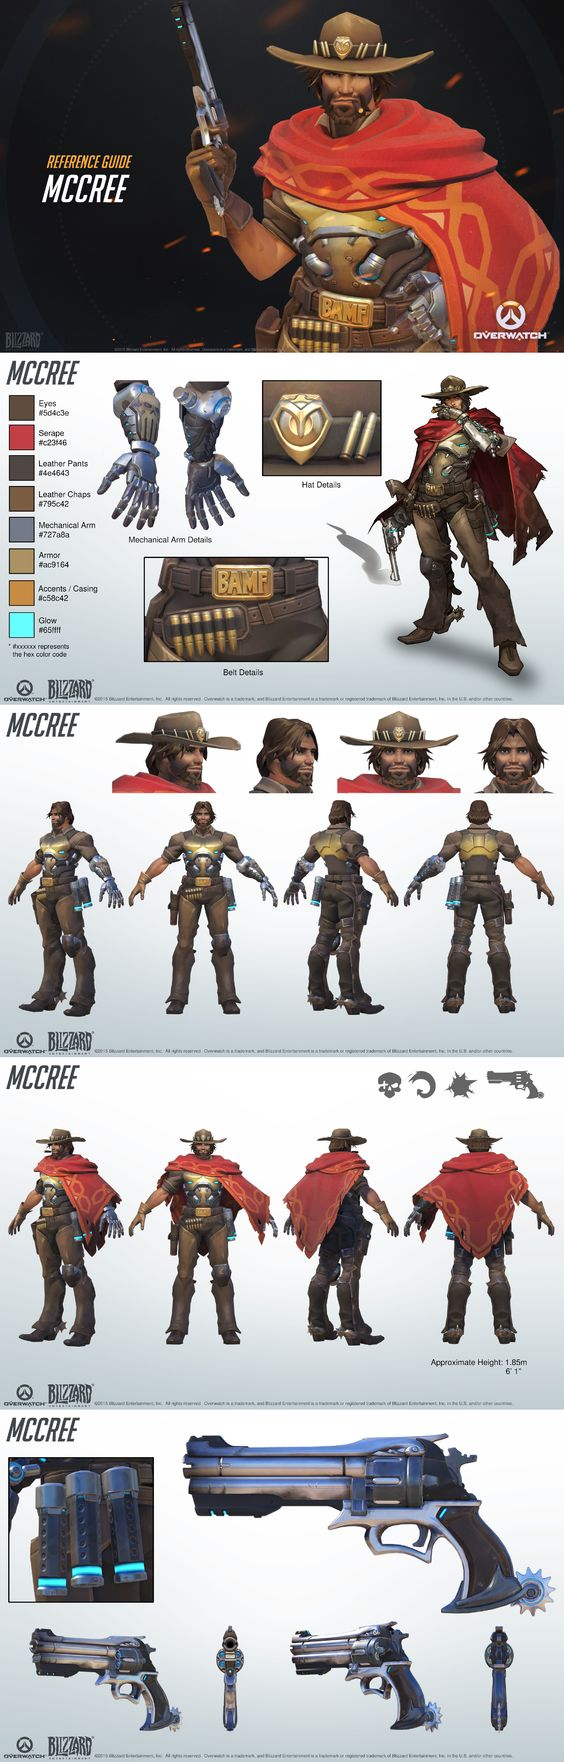 Google themes overwatch - Overwatch Mccree Reference Guide